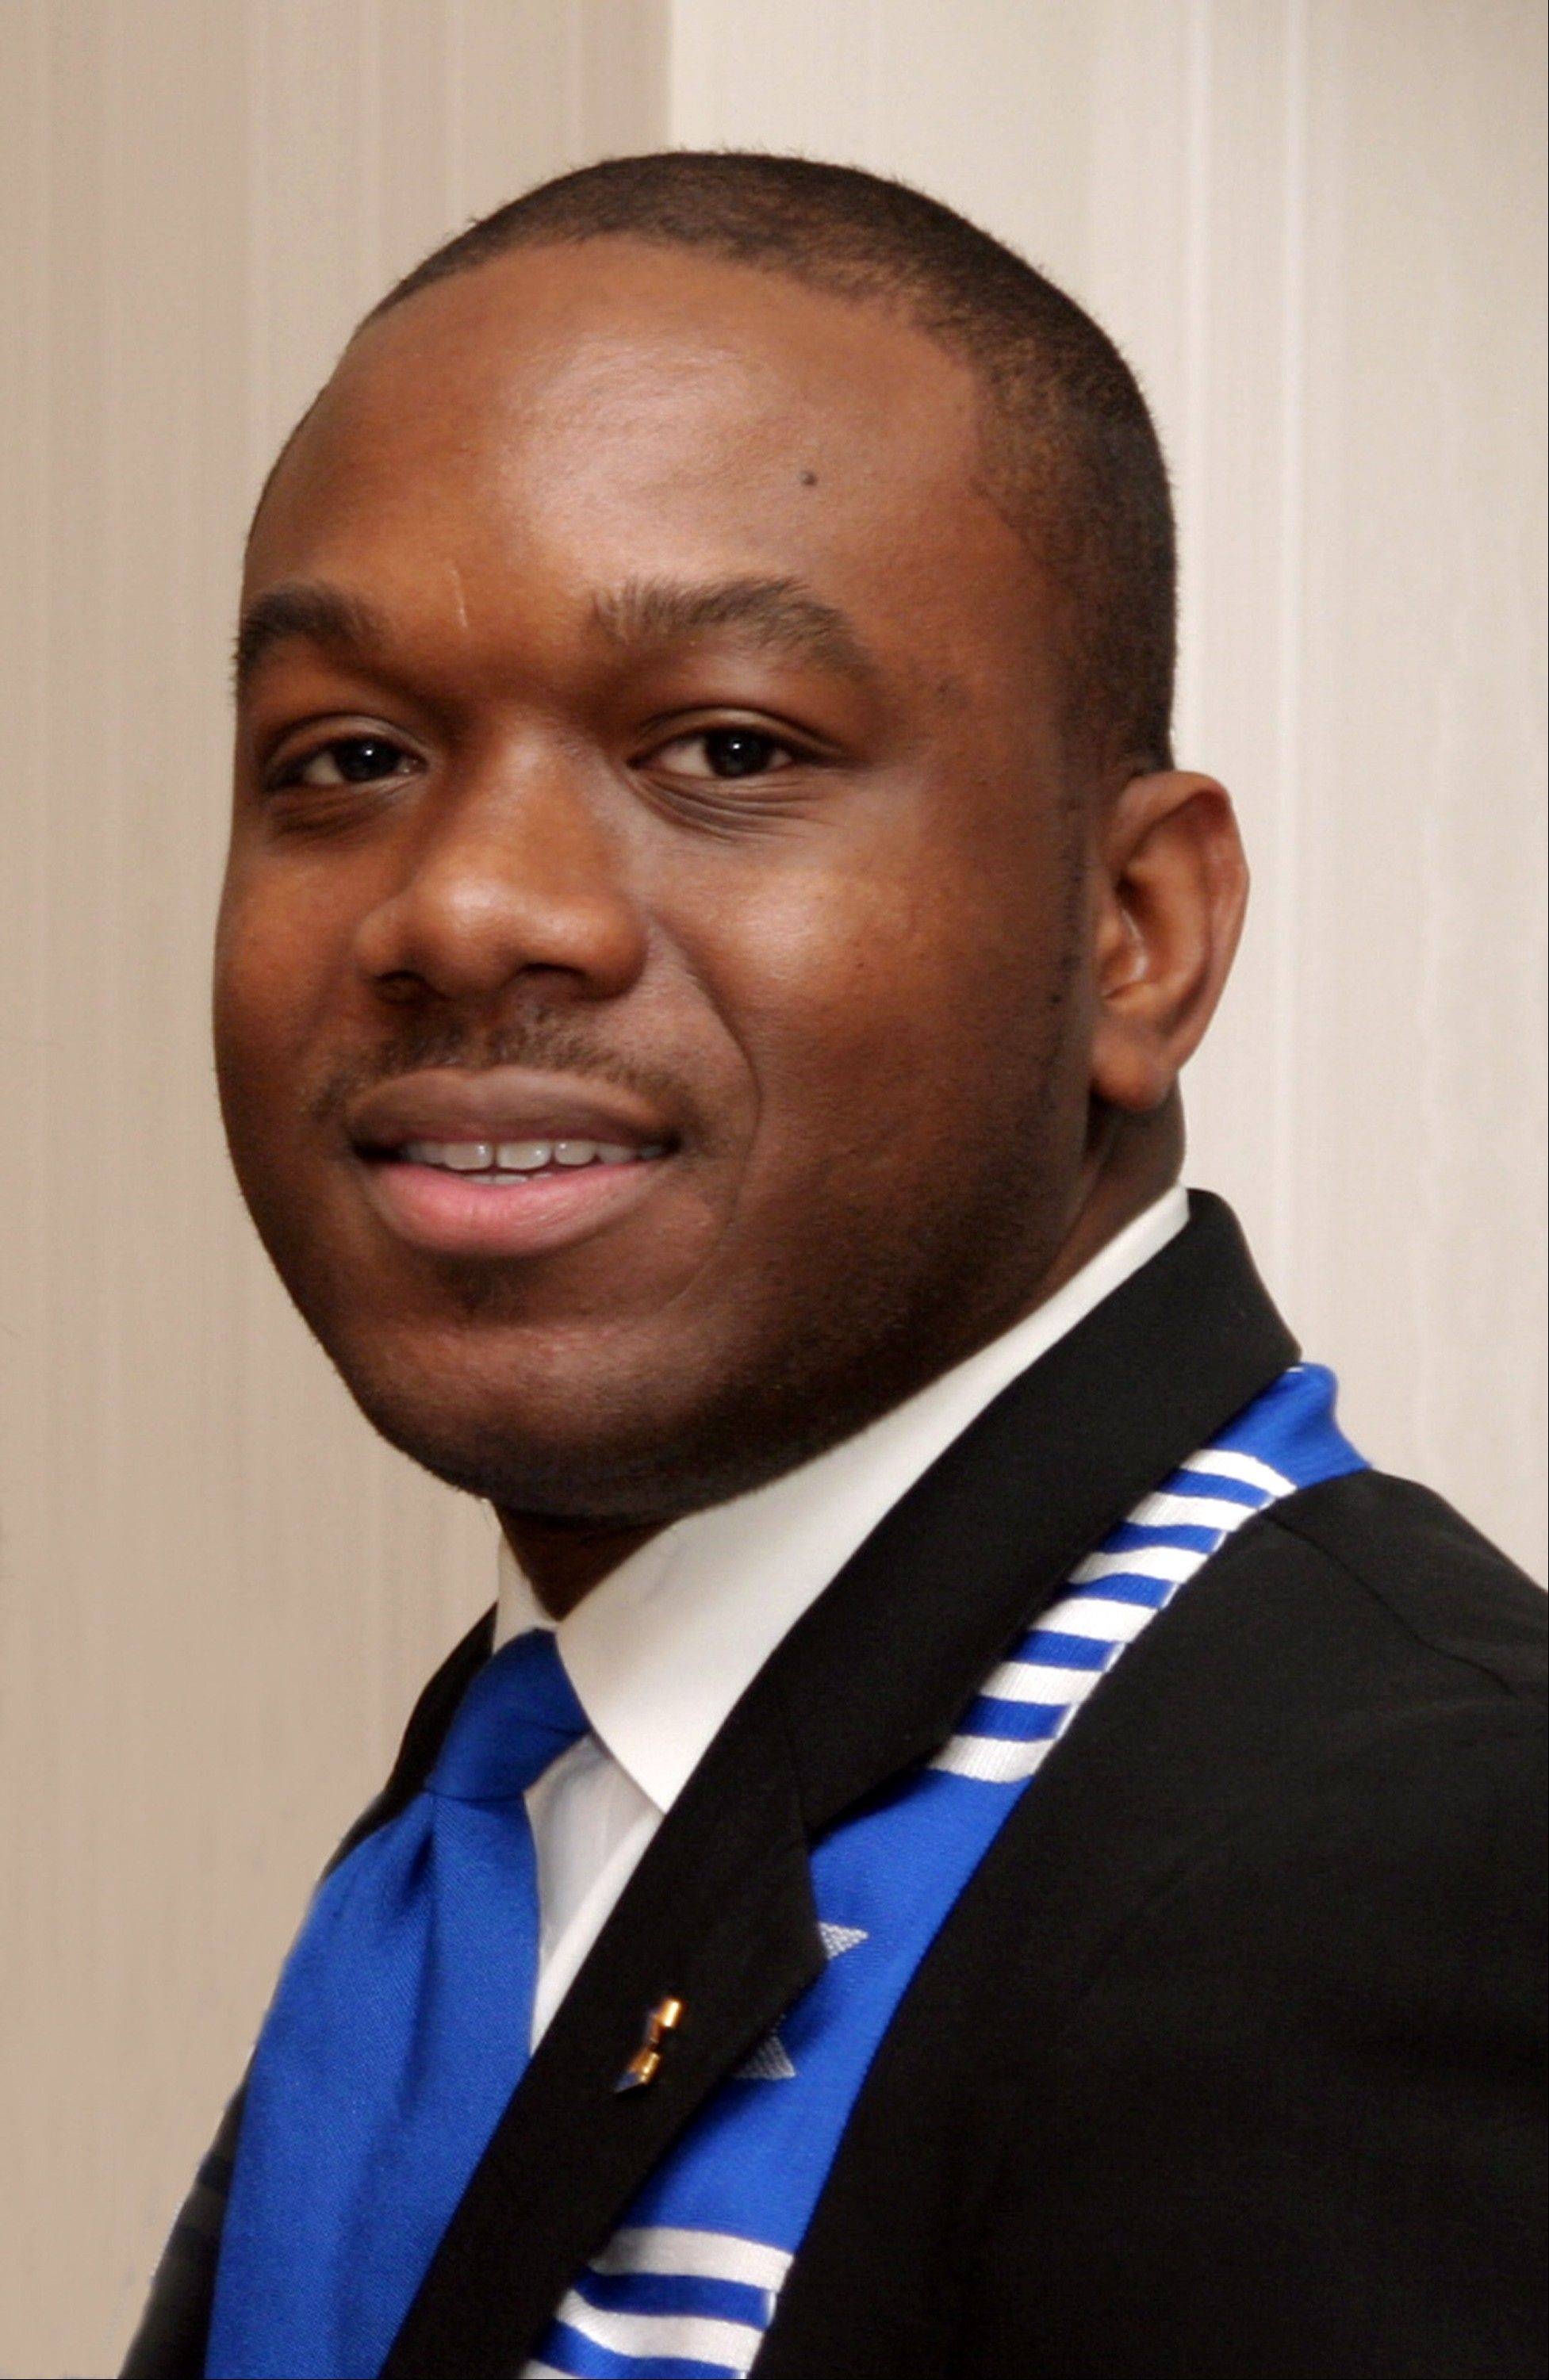 Marco McMillian, 34, a candidate for mayor of Clarksdale, Miss., who was found dead on the Mississippi River levee Wednesday, Feb. 27, 2013 between Sherard and Rena Lara, Miss. Authorities say the case is being investigated as a homicide. McMillian had served as international executive director of Phi Beta Sigma Fraternity, Inc. His campaign said he may have been the first openly gay man to be a viable candidate for public office in Mississippi.